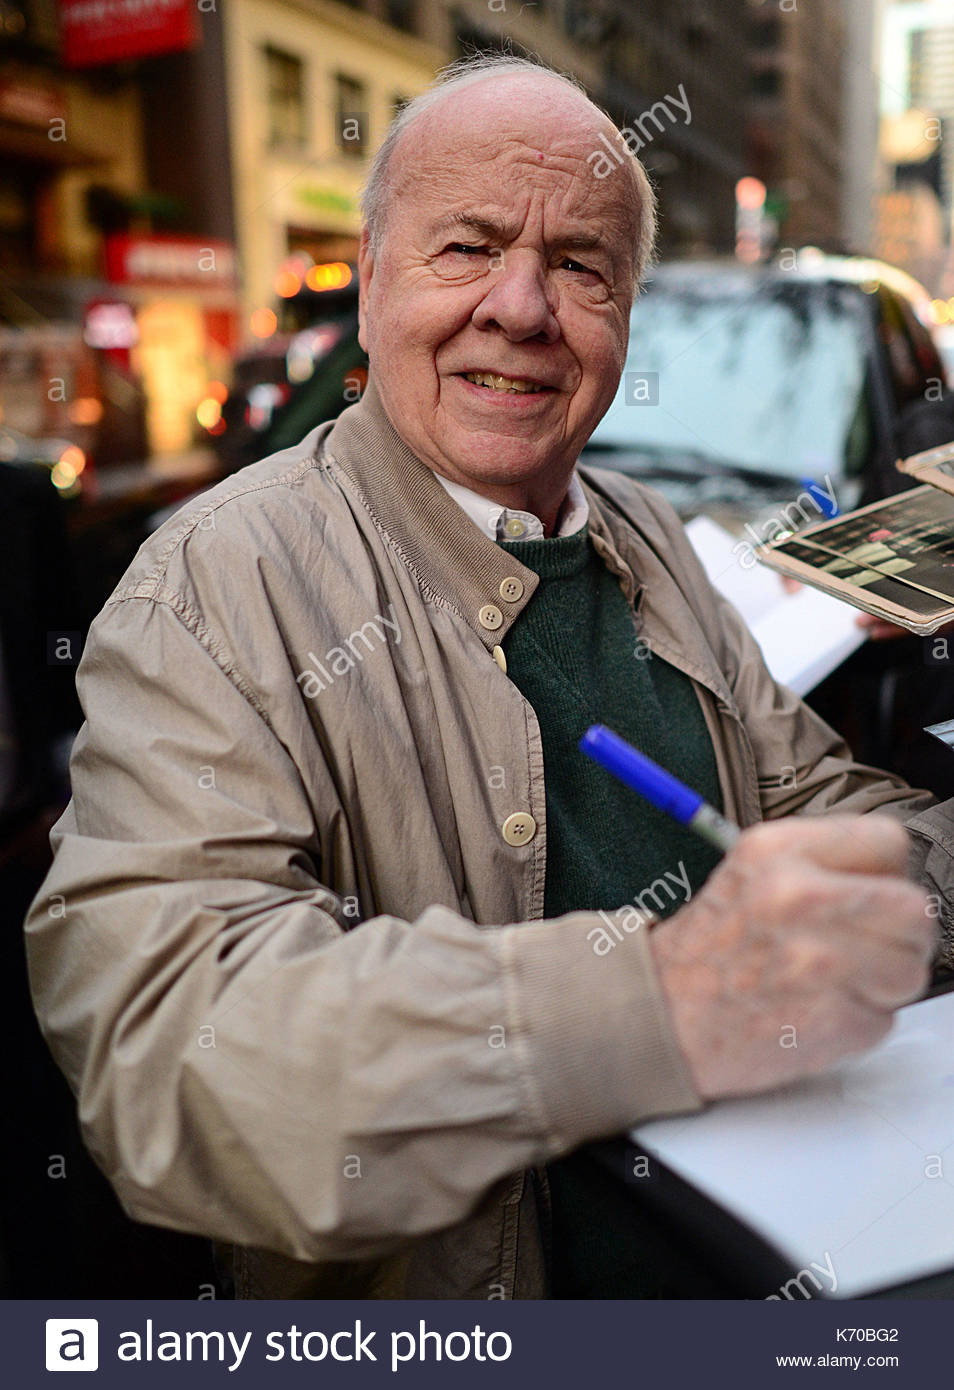 tim conway conway stock photos amp tim conway conway stock